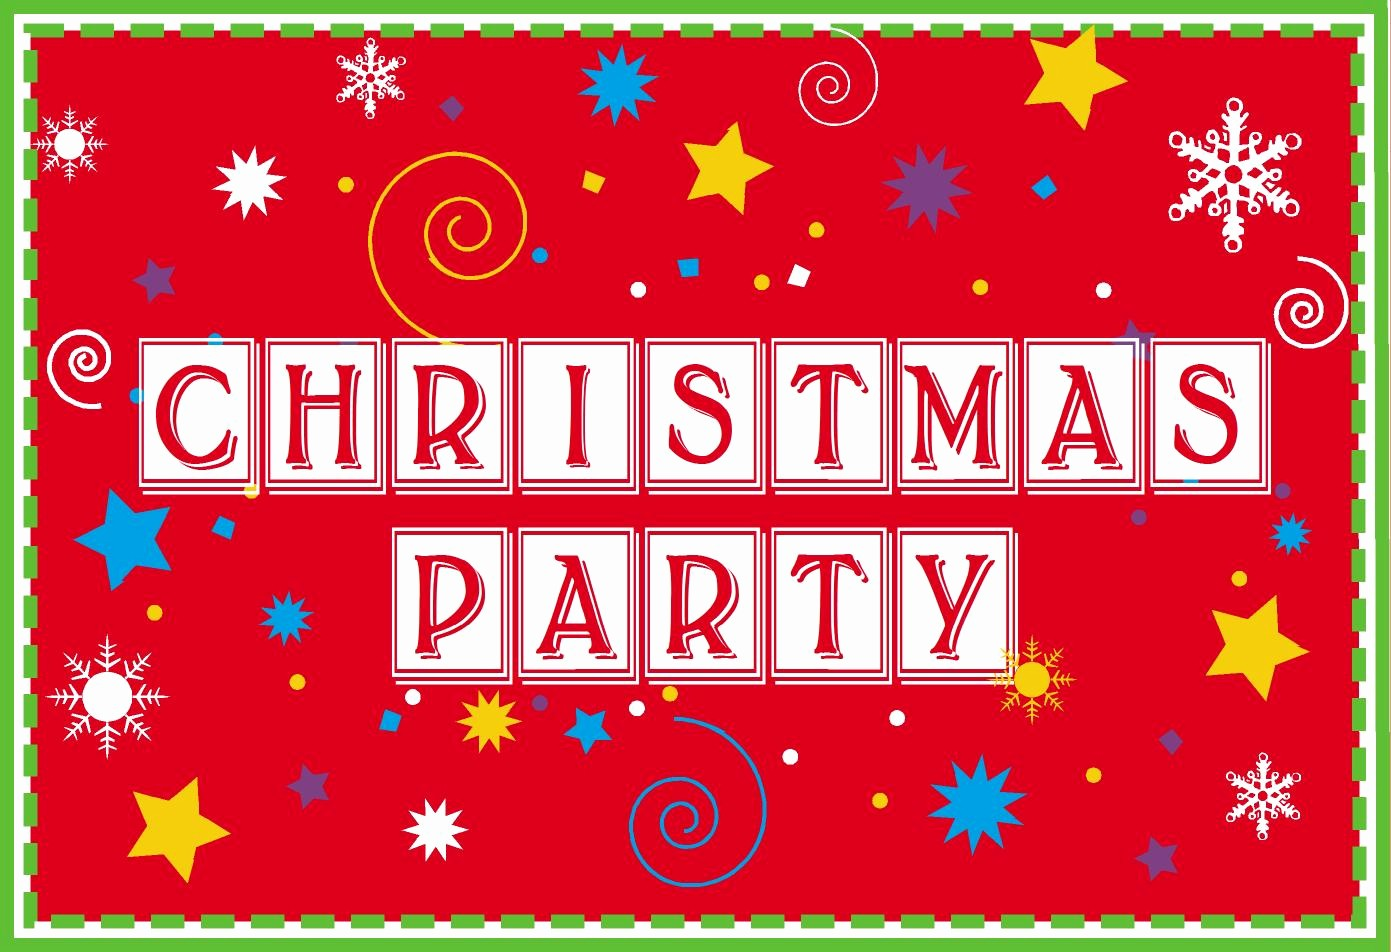 Free Online Christmas Party Invitations Fresh Free Christmas Party Invitation Card & Line Invitations